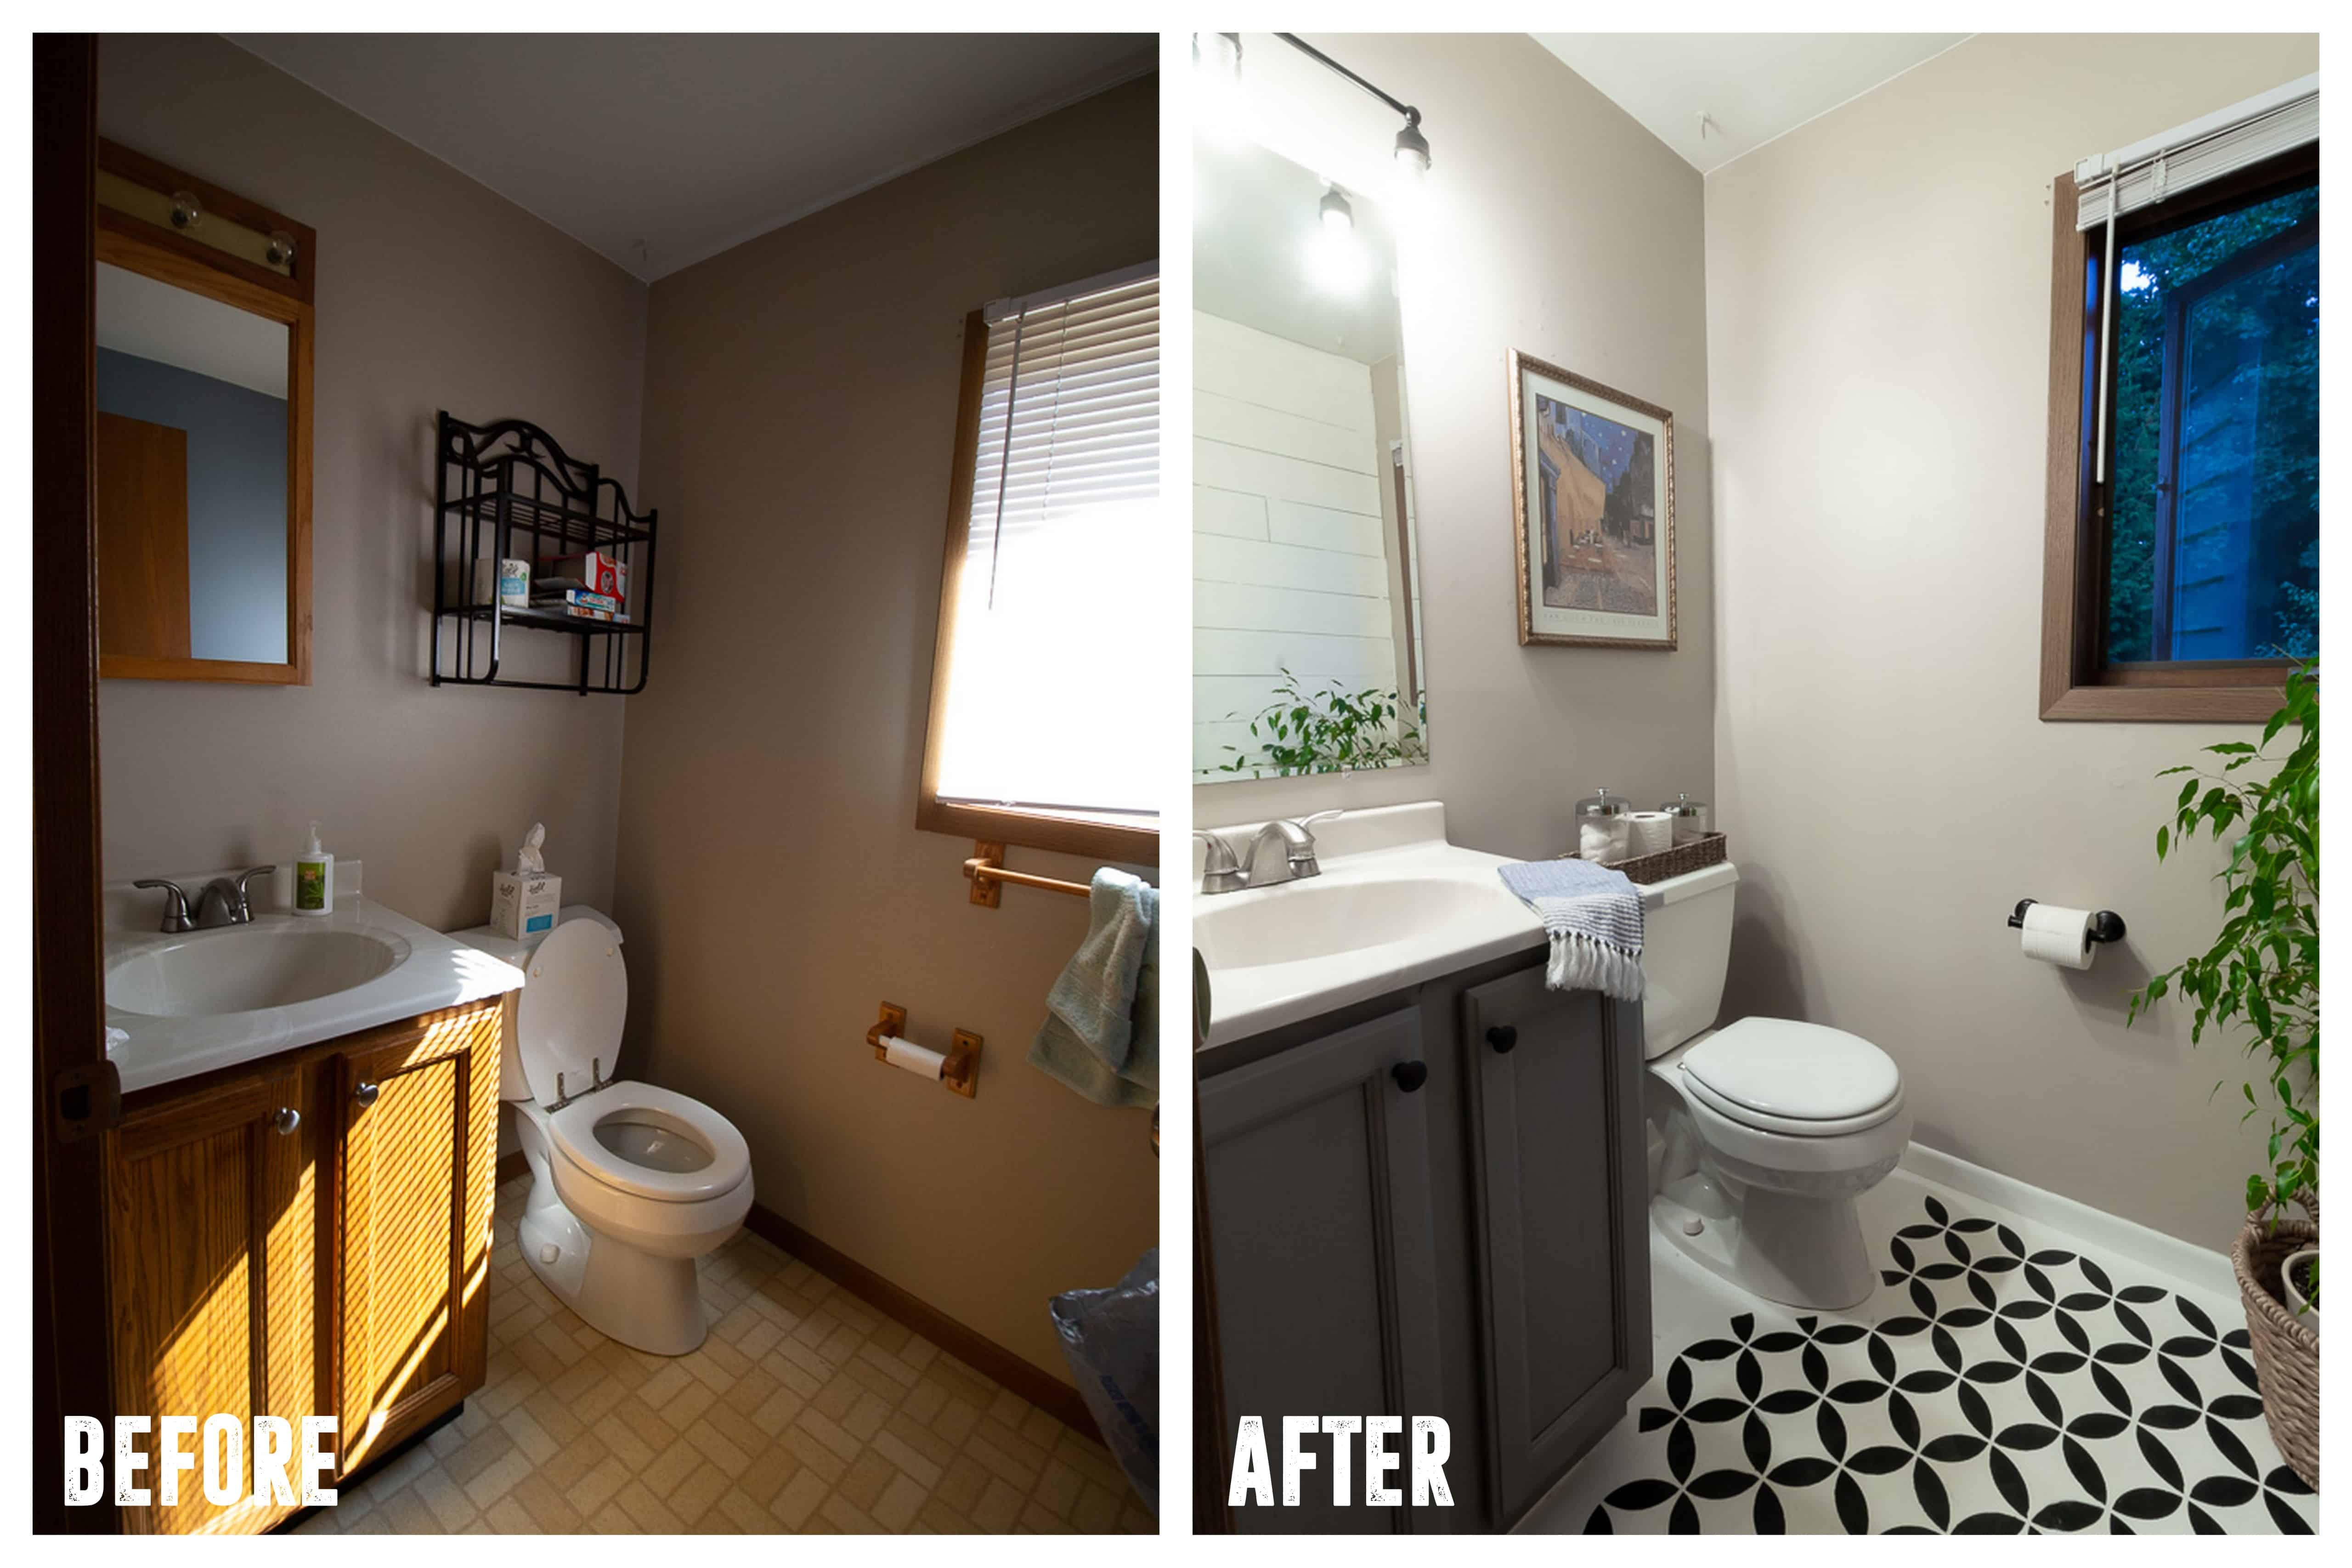 We Did The Exact Same Updates In Both Bathrooms, Hereu0027s A List Of The Simple  Ways You Can Update Your Bathroom In A Weekend: